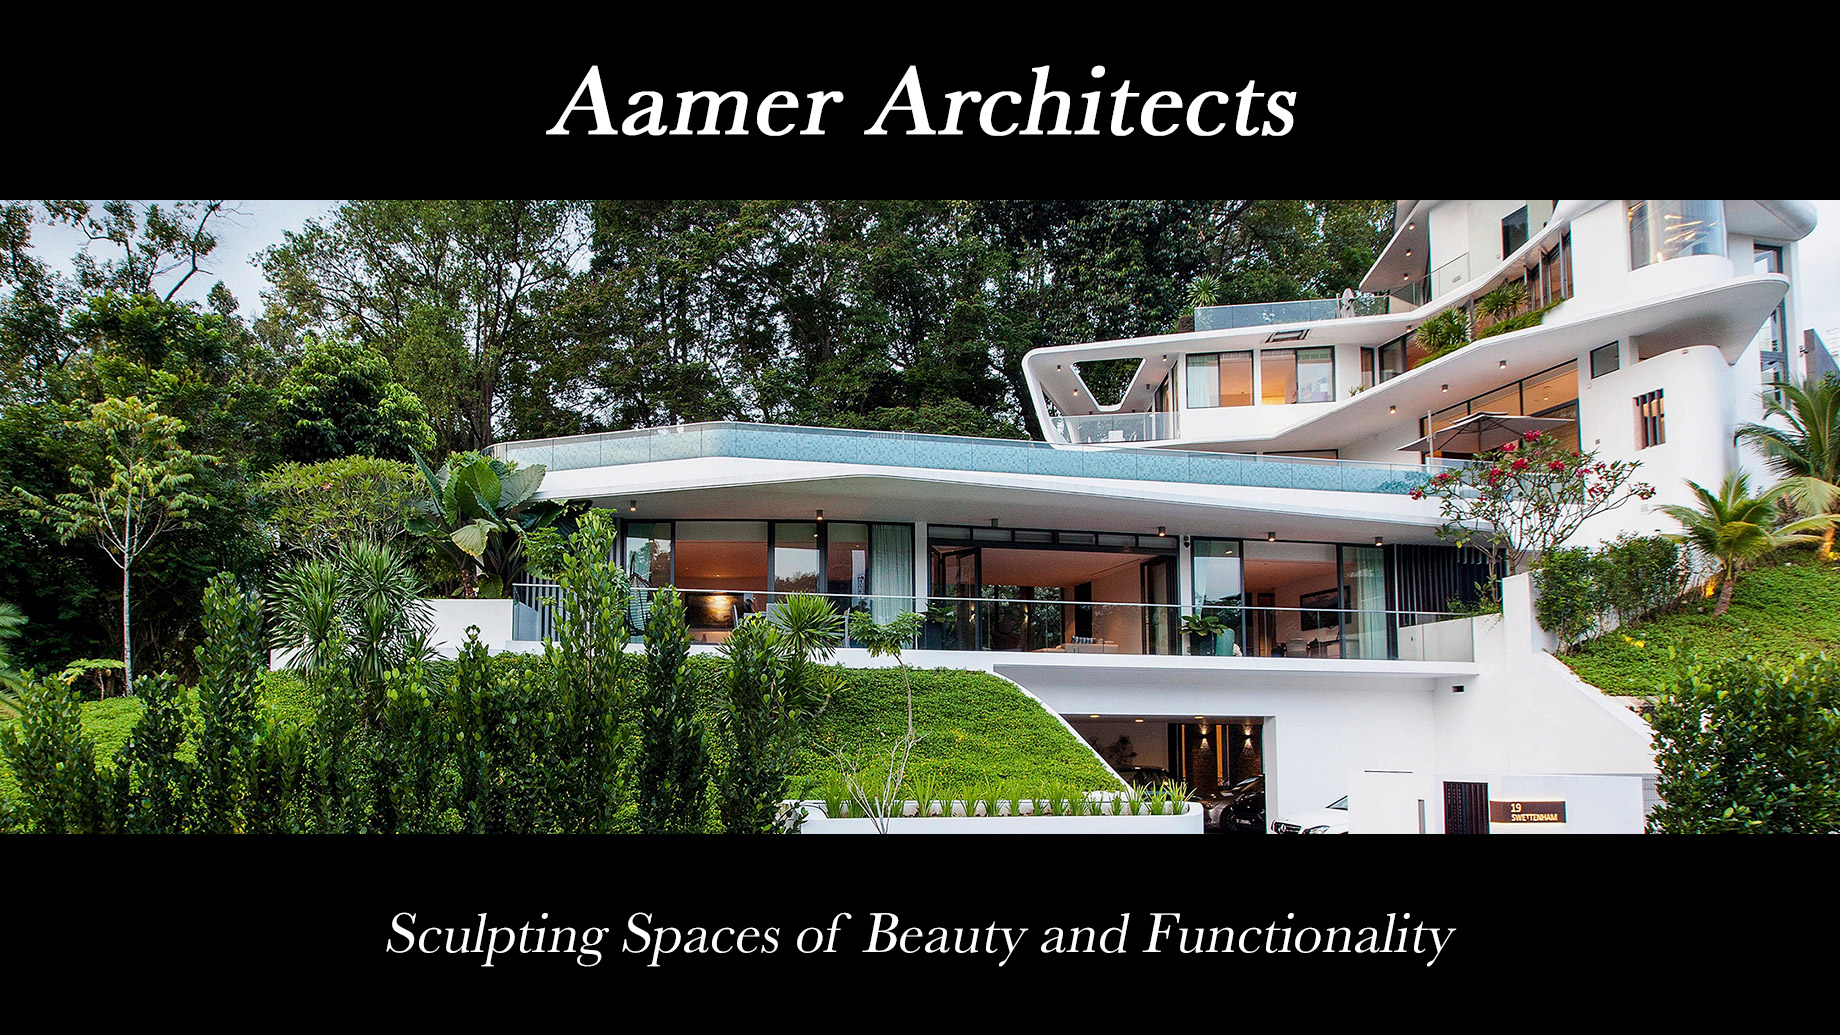 Aamer Architects - Sculpting Spaces of Beauty and Functionality